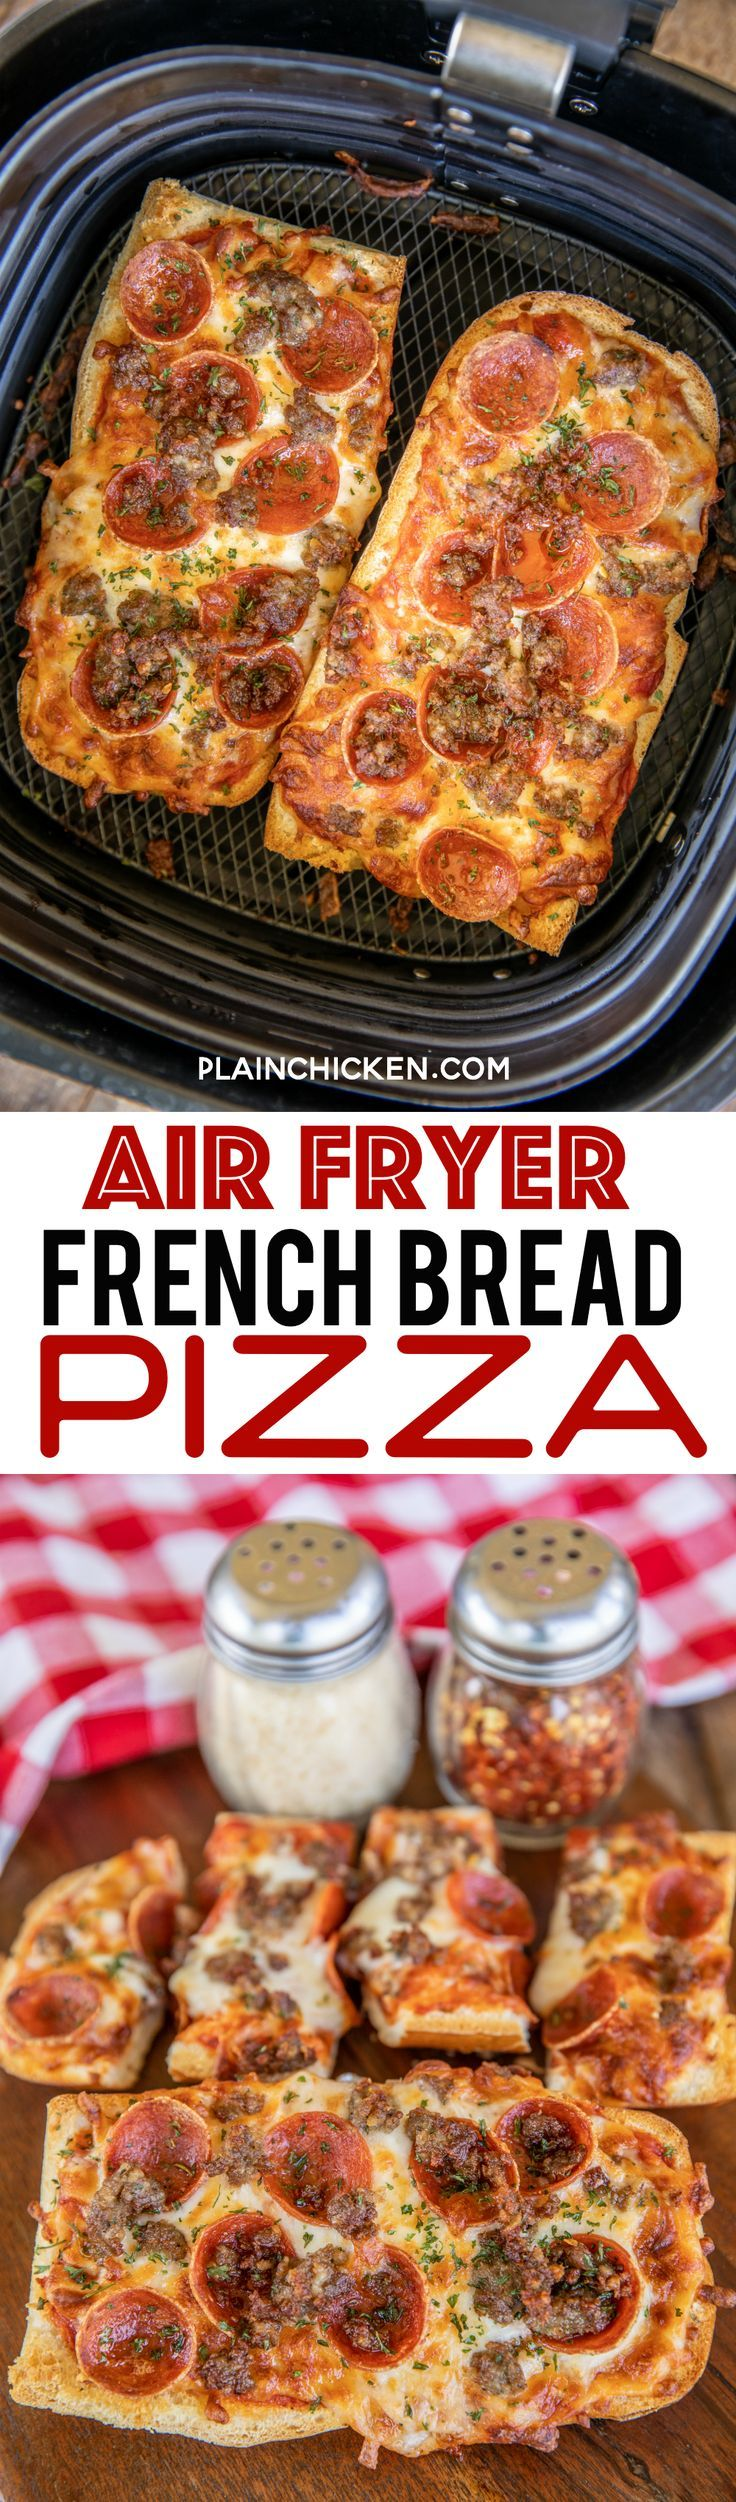 Homemade Air Fryer French Bread Pizza a million times